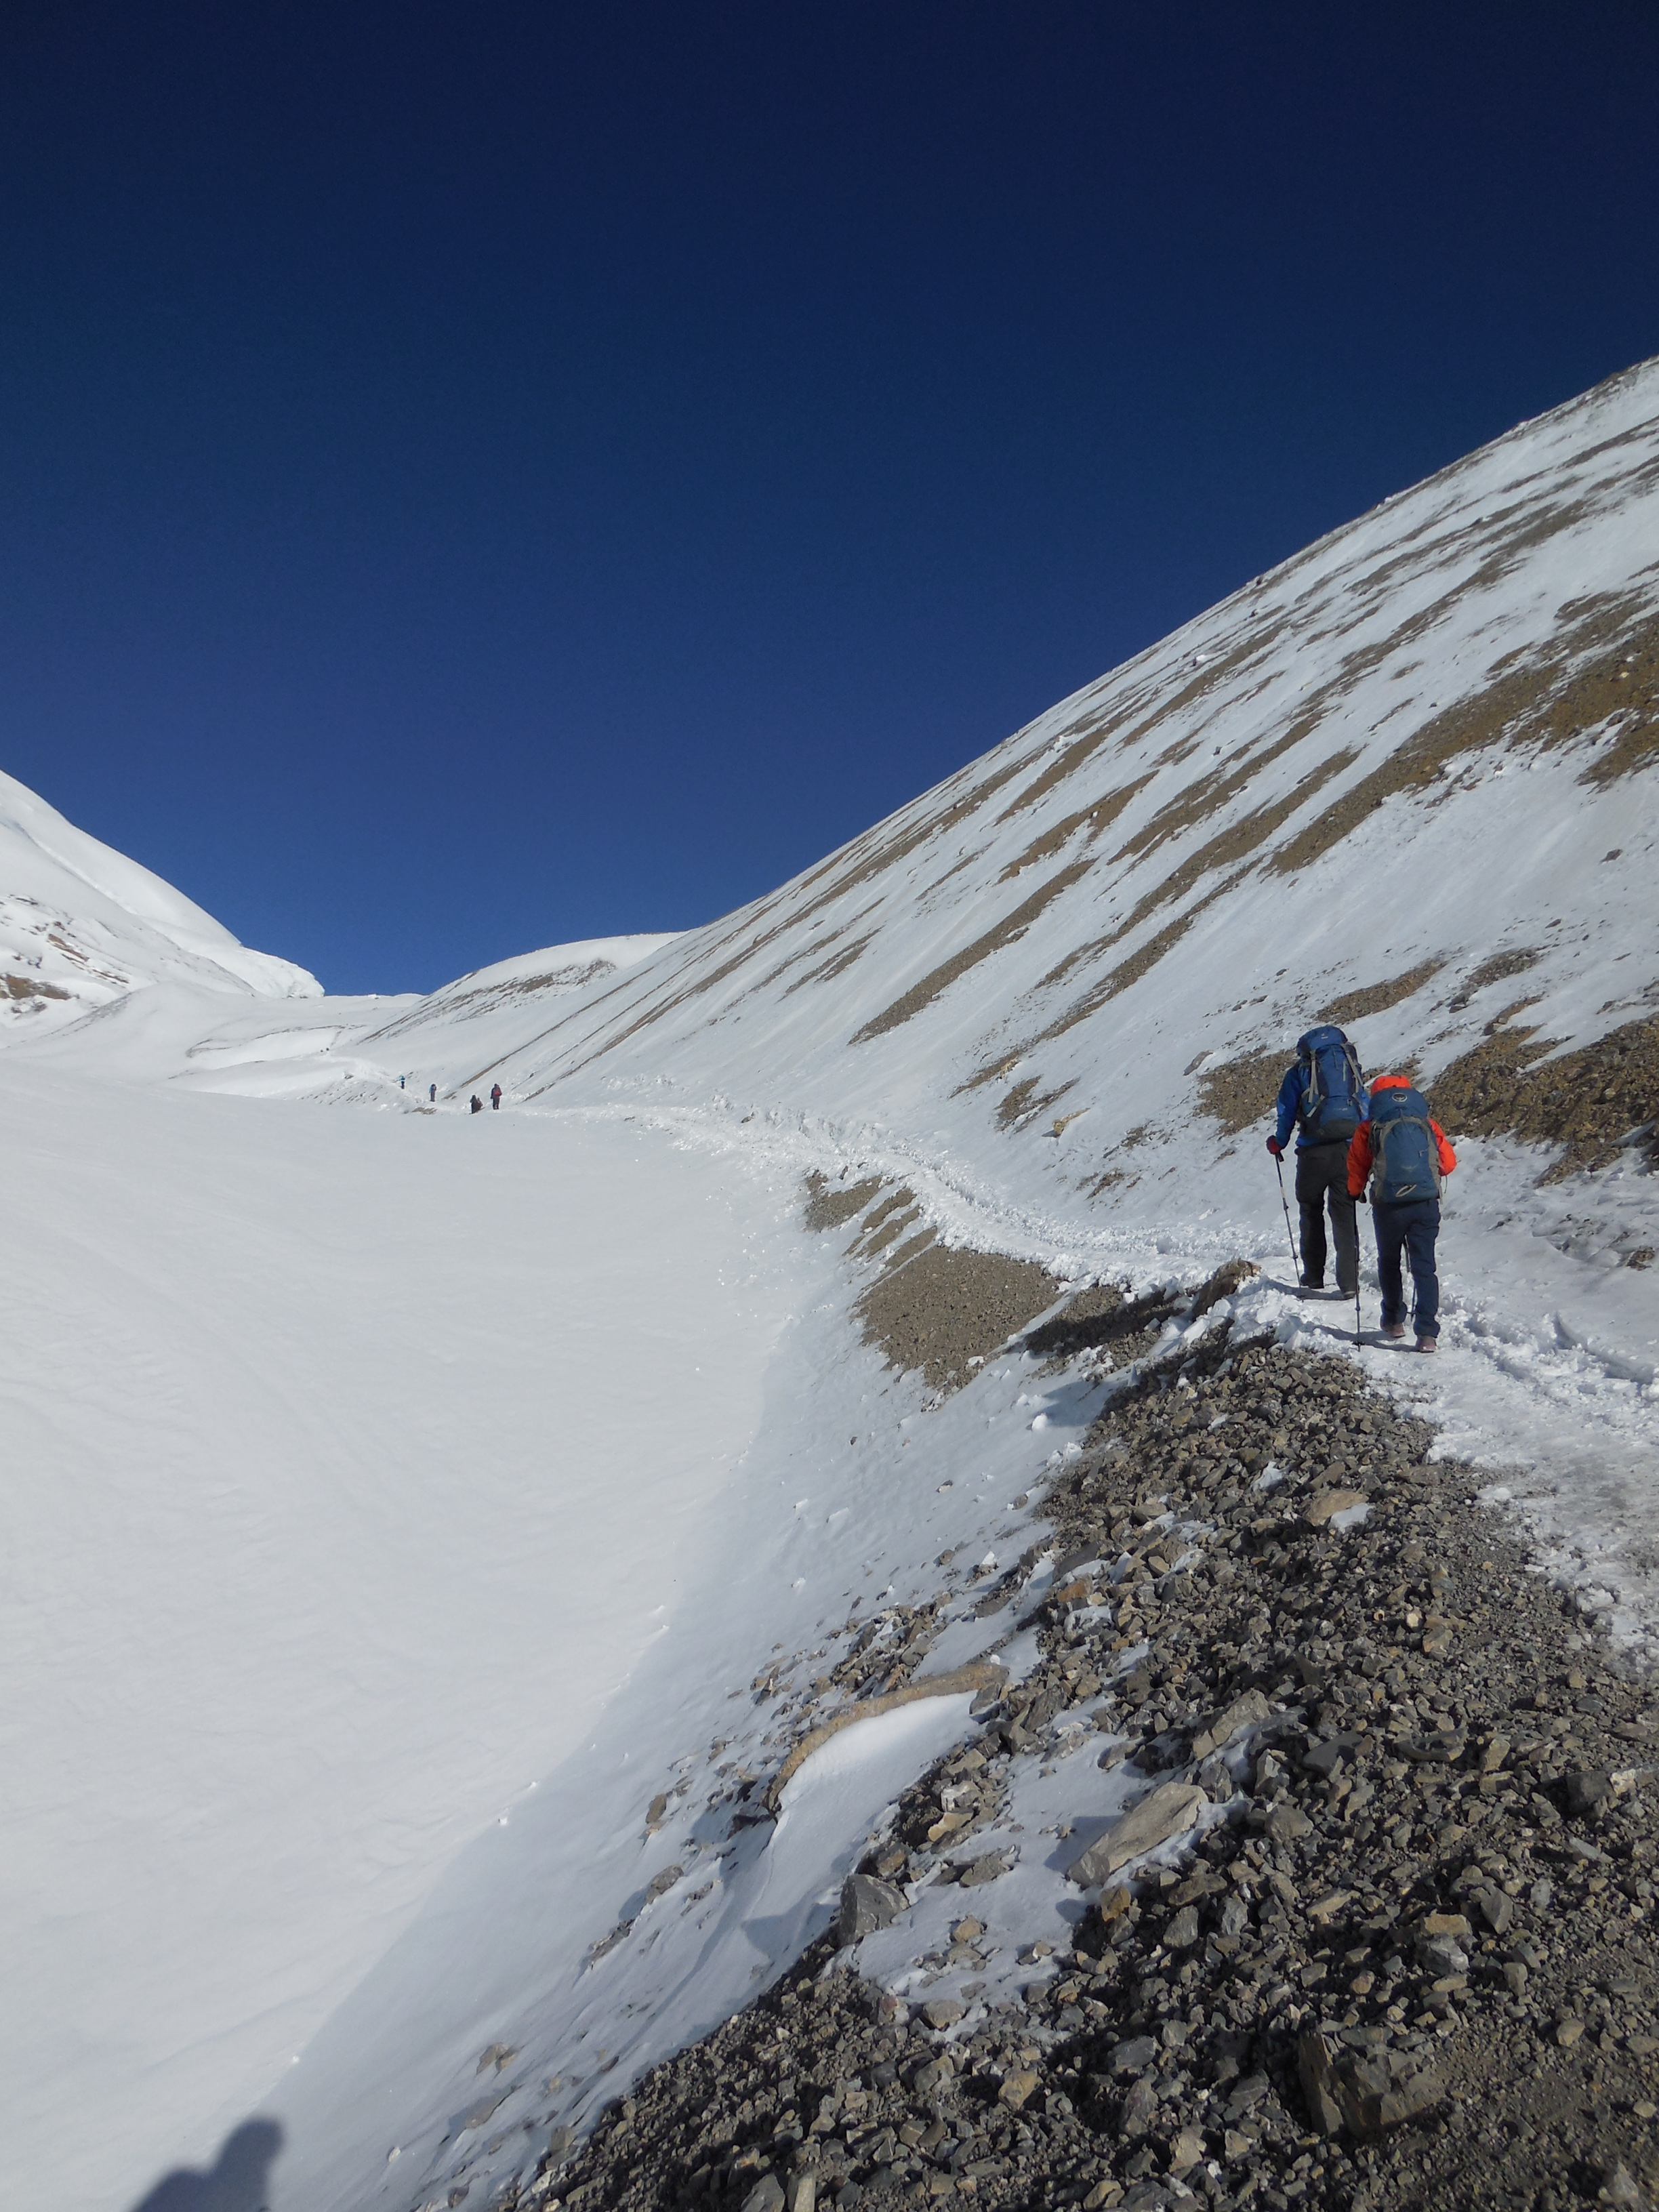 On the way to Thorung La, highest point of this trip